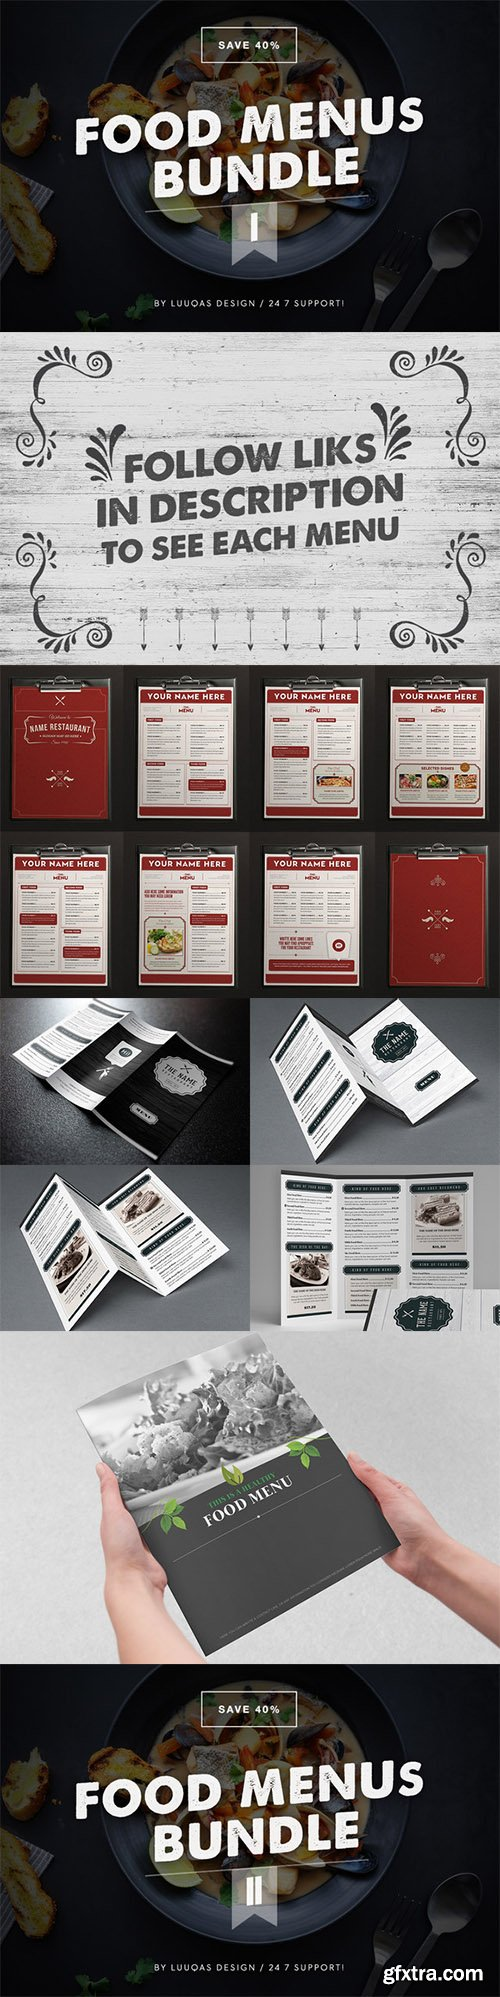 CM Food Menus Bundle 1 and 2 299991 299594